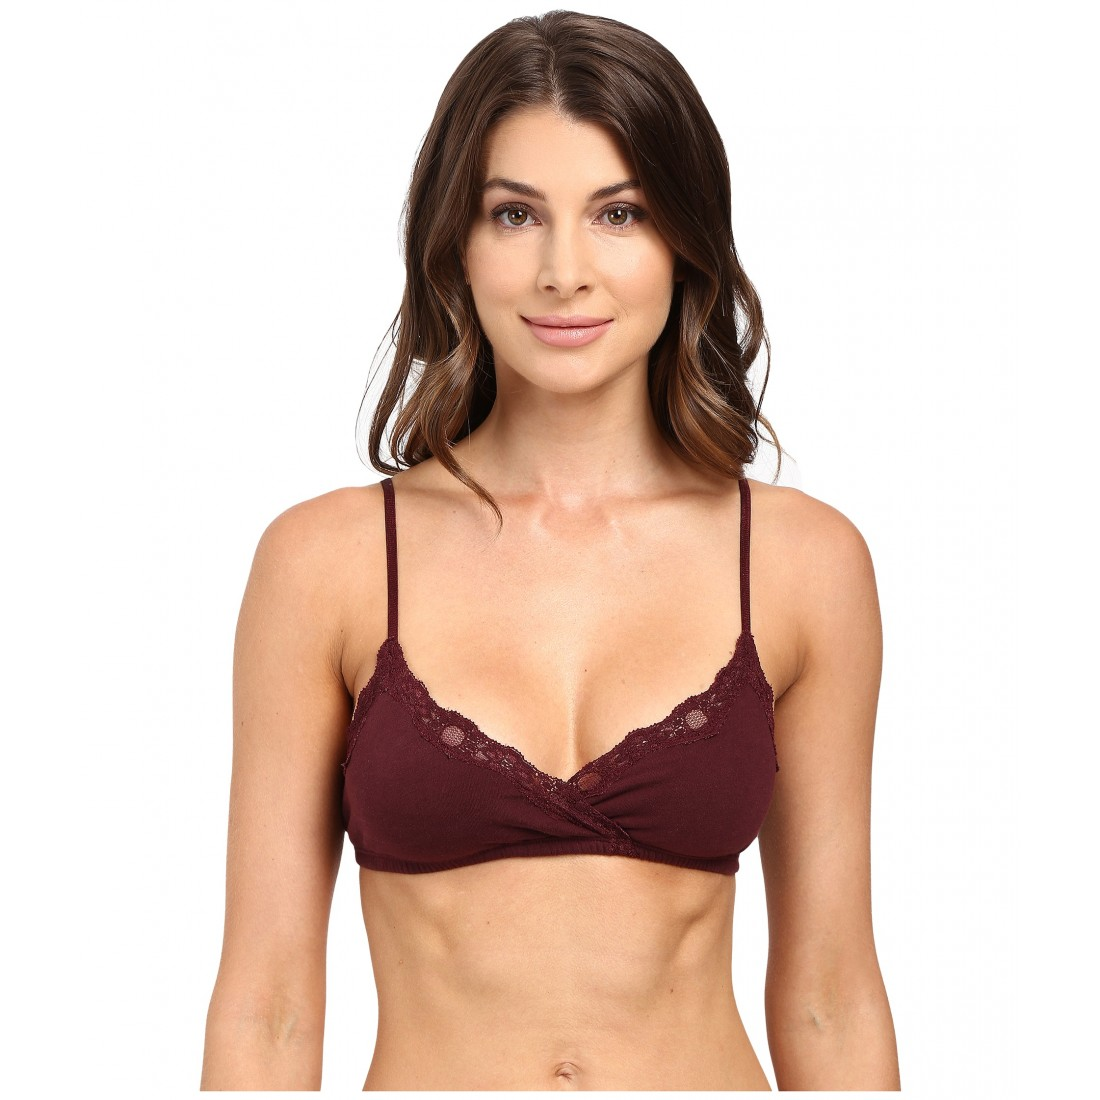 f64d548a6cb12 Only Hearts Organic Cotton Wrap Bralette 6PM8753339 Wine